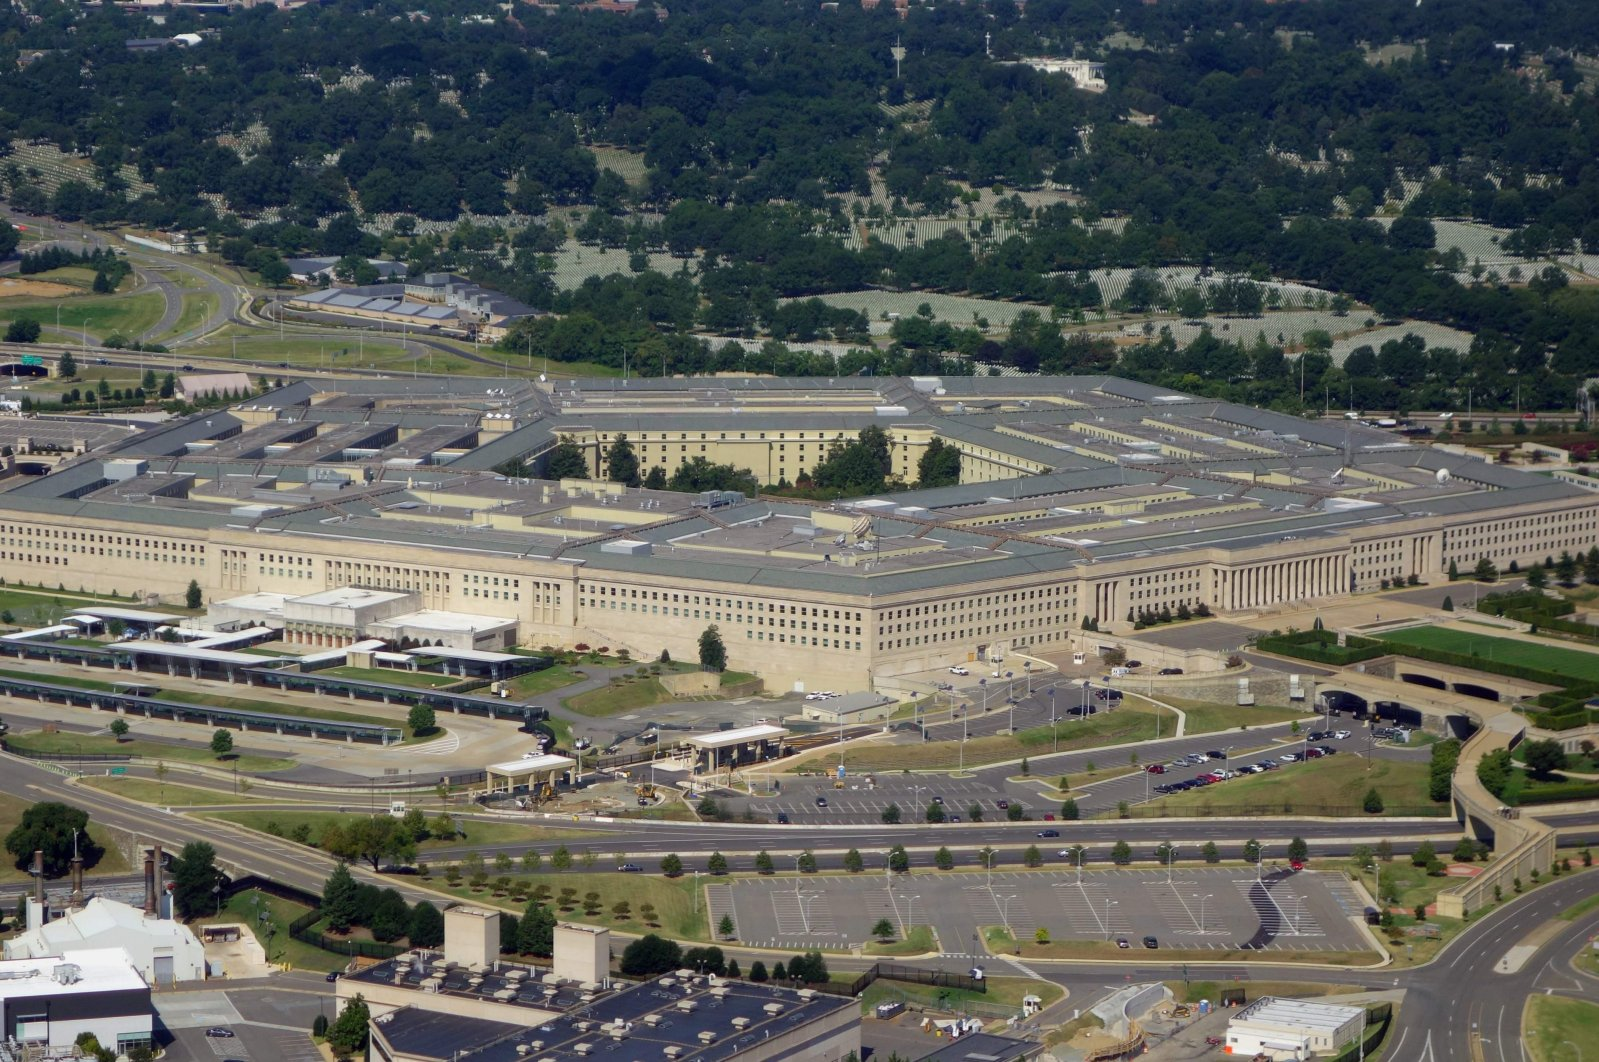 (FILES) In this file photo taken on August 25, 2013, The Pentagon is seen from the air over Washington, DC. - The US Defense Department announced on March 20, 2020, it has successfully tested an unarmed hypersonic missile, a weapon that could potentially overwhelm an adversary's defense systems. The Pentagon said a test missile flew at hypersonic speeds -- more than five times the speed of sound, or Mach 5 -- to a designated impact point. (Photo by SAUL LOEB / AFP)